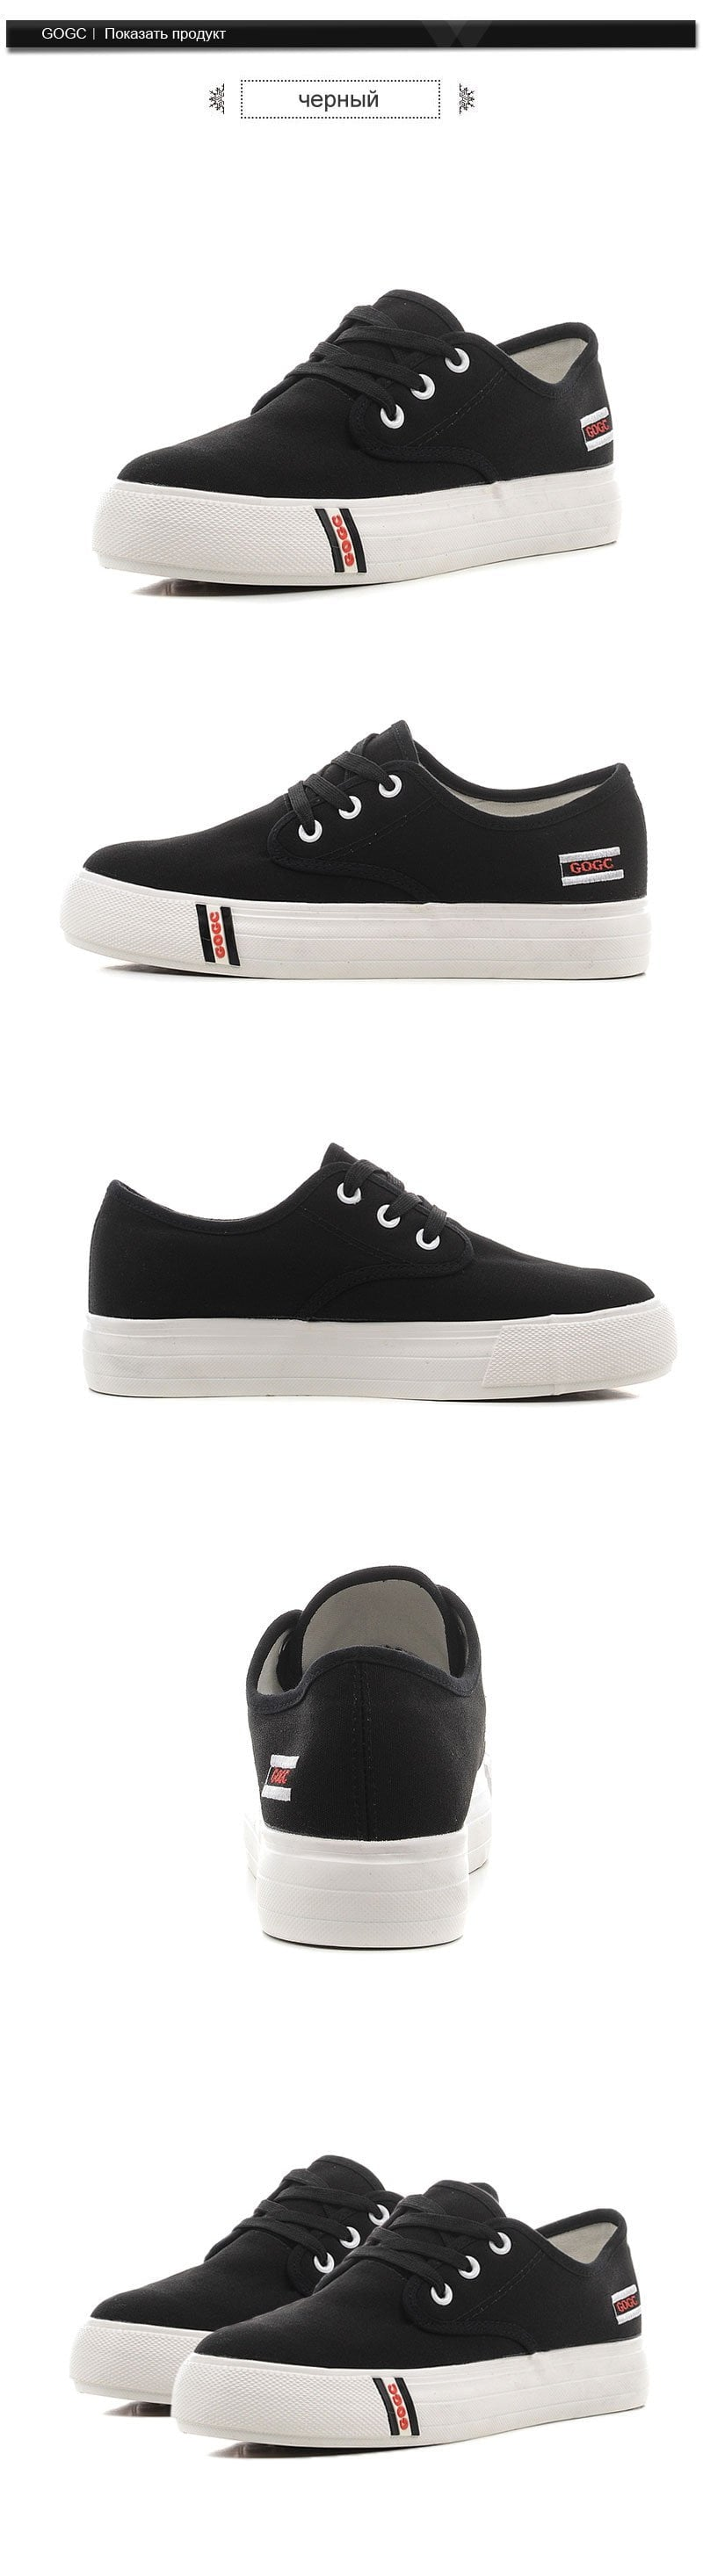 Shoes for Women Comfortable Canvas Shoes Women Causal Shoes Black White Flat Shoes Women Female Footwear-SLIPS-SheSimplyShops